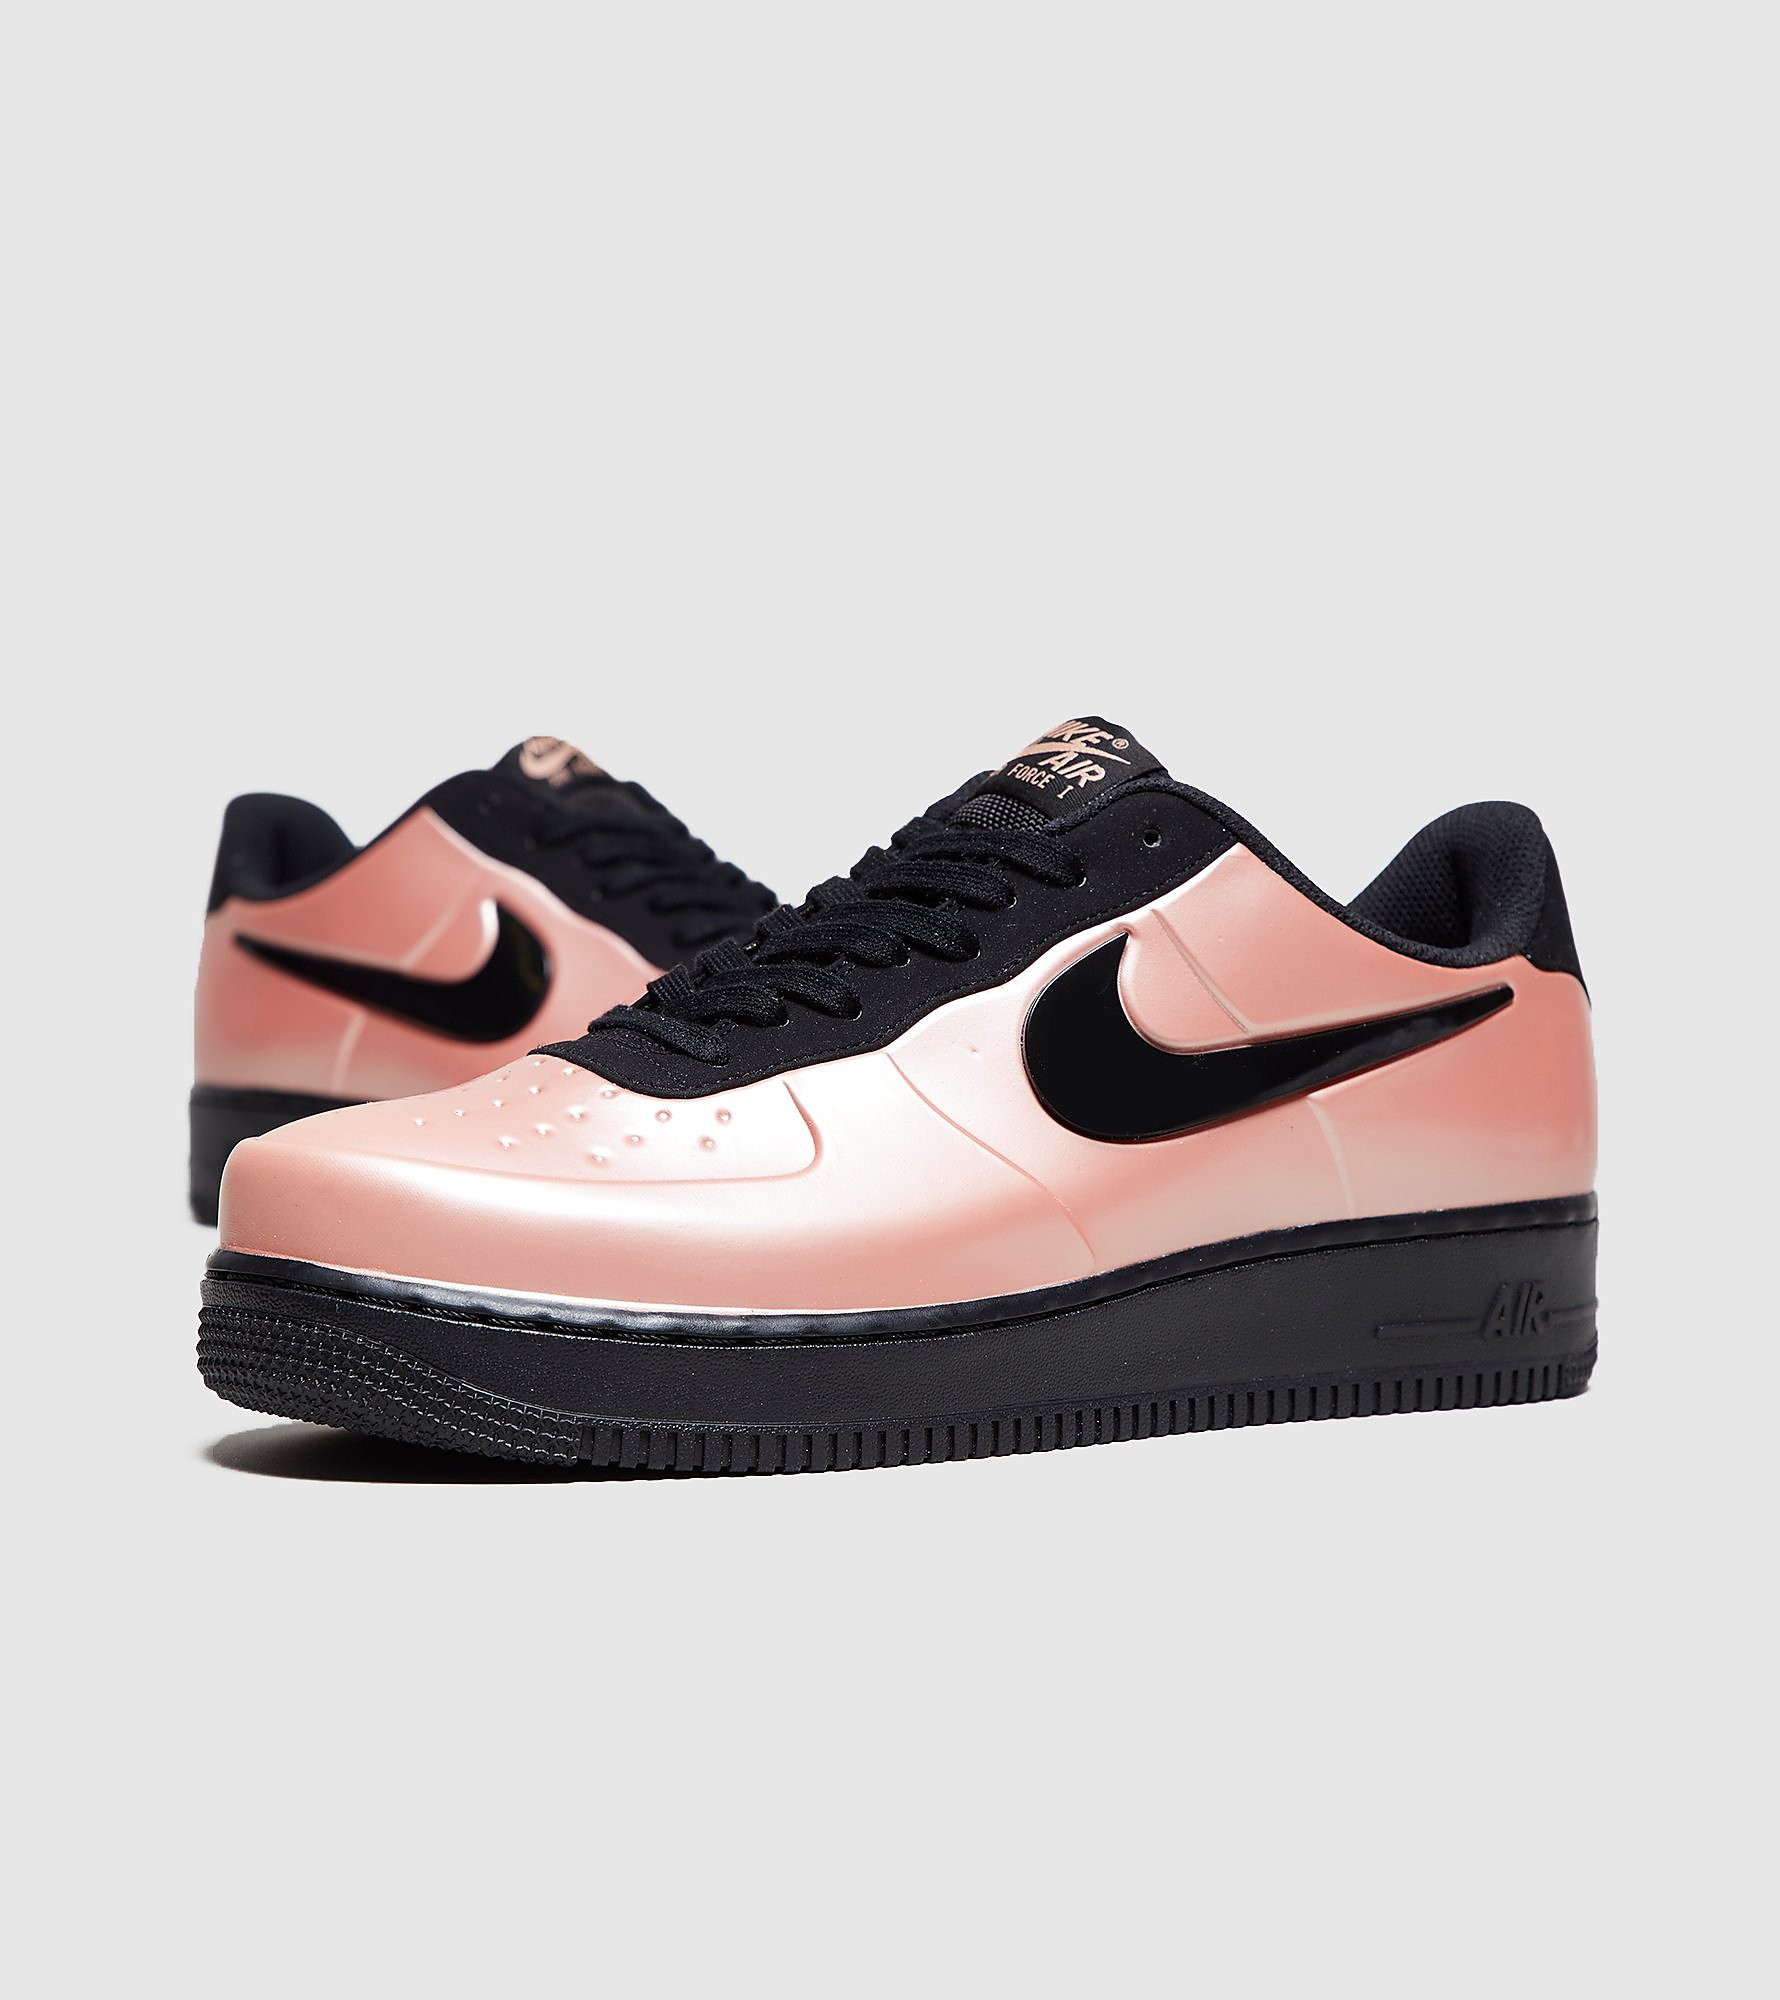 Nike Air Force 1 Foamposite Pro Cupsole